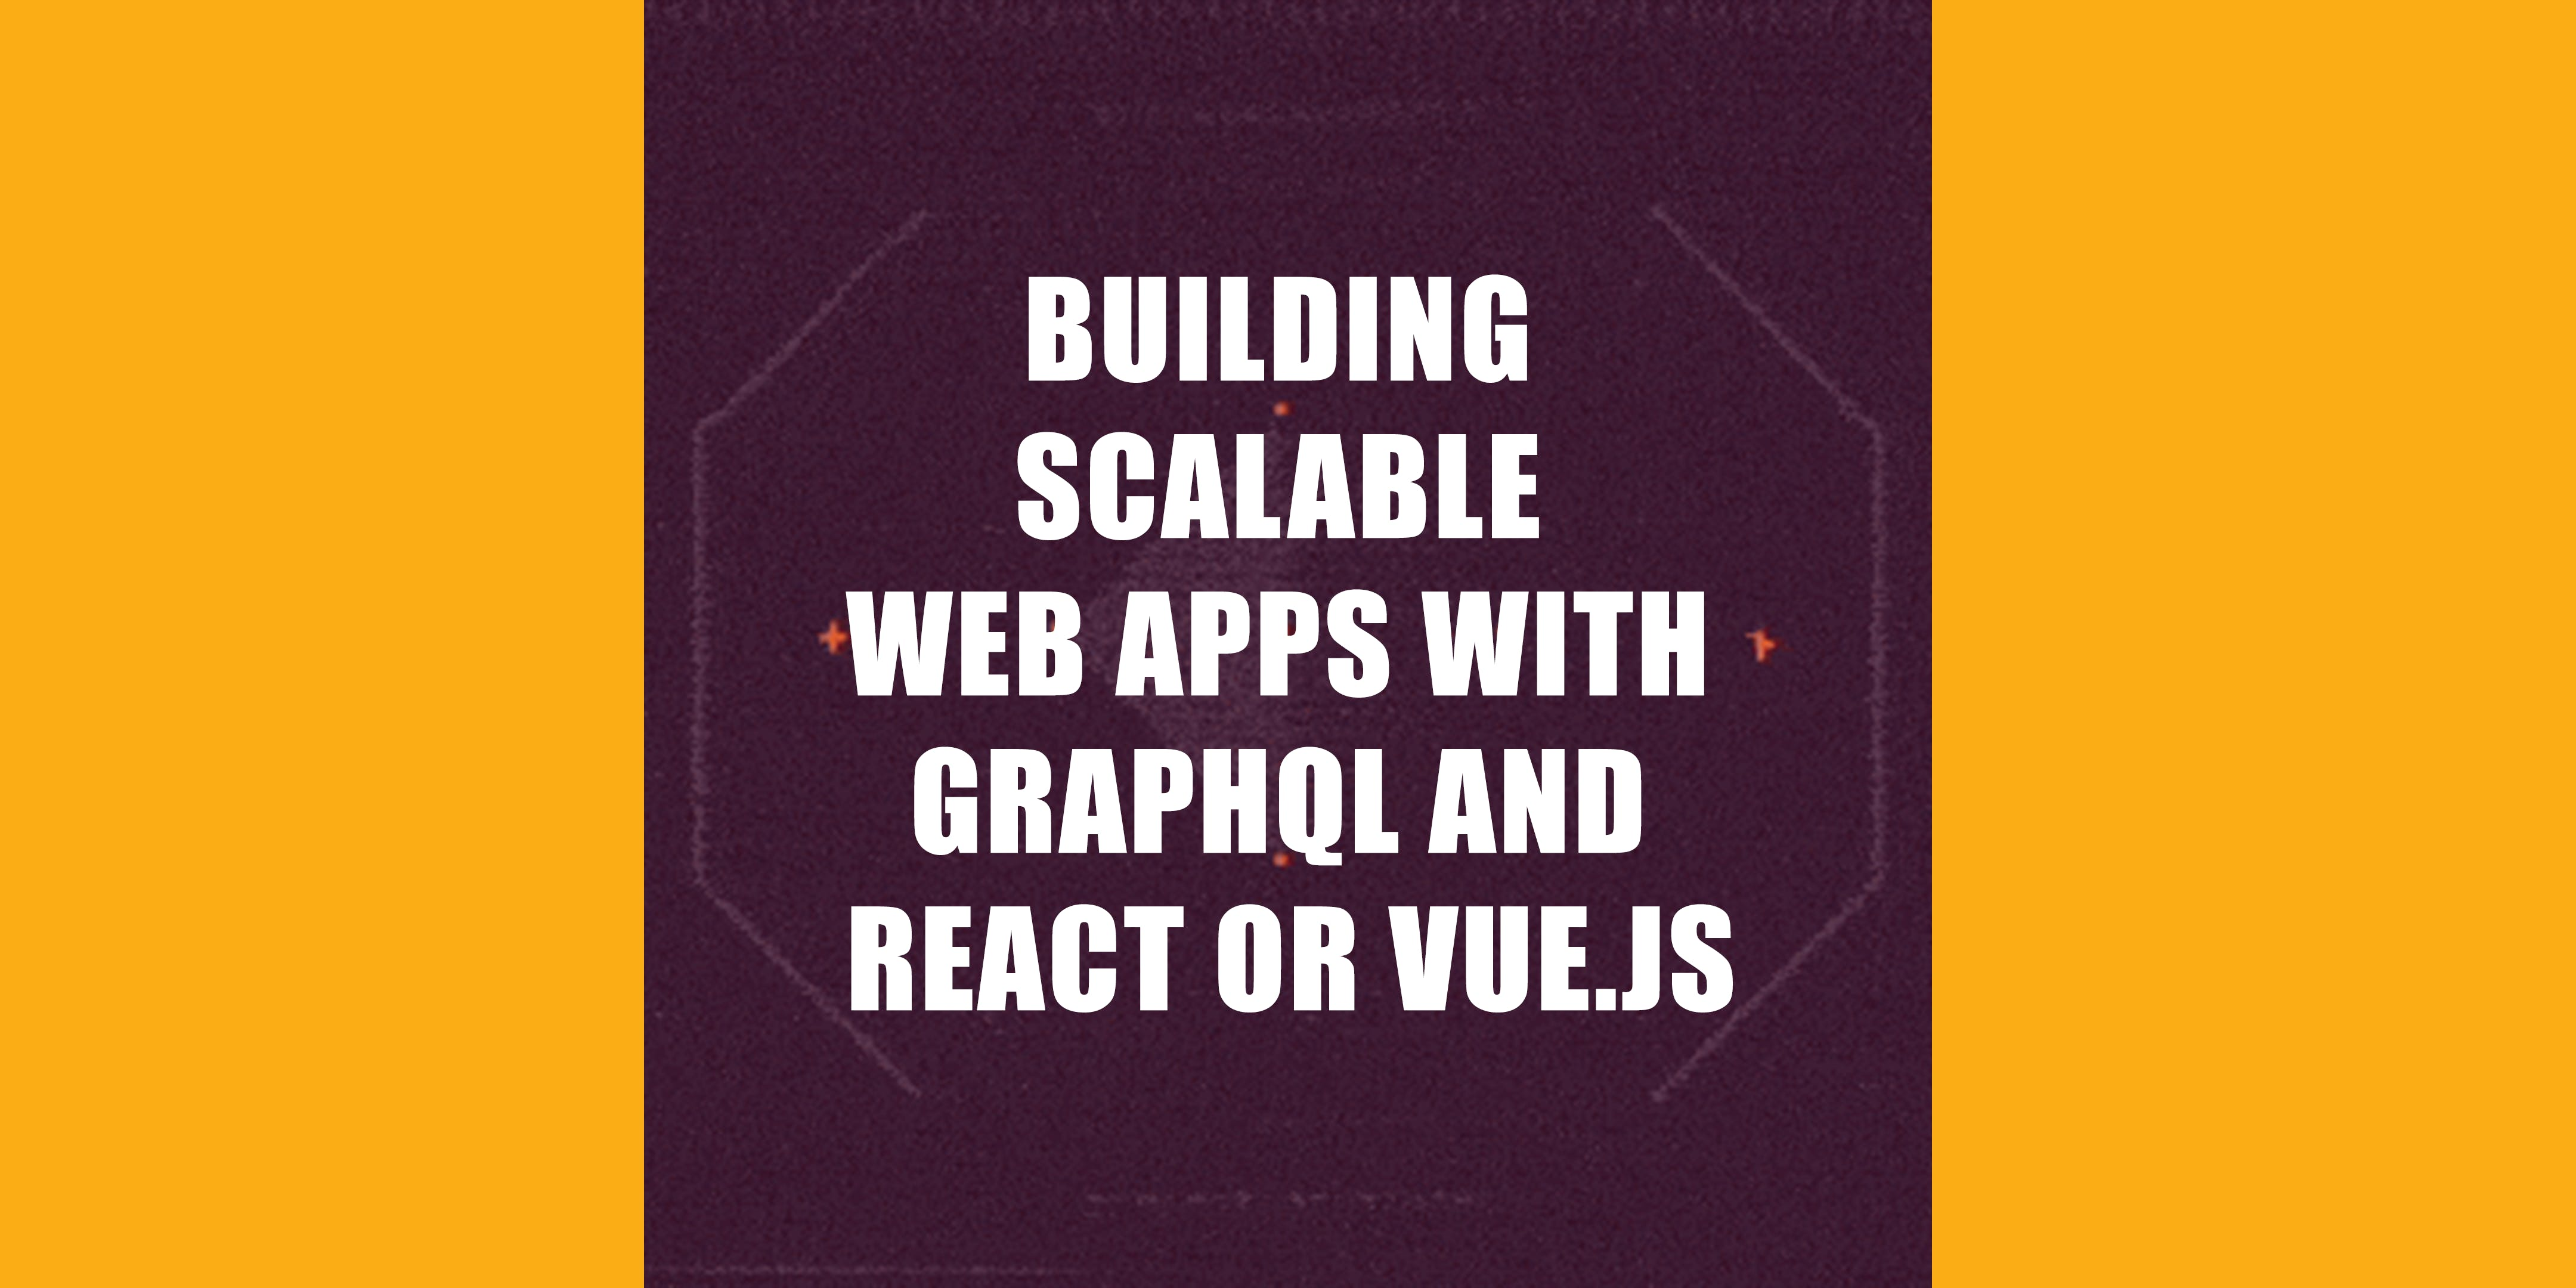 Building Scalable Web Apps with GraphQL and R